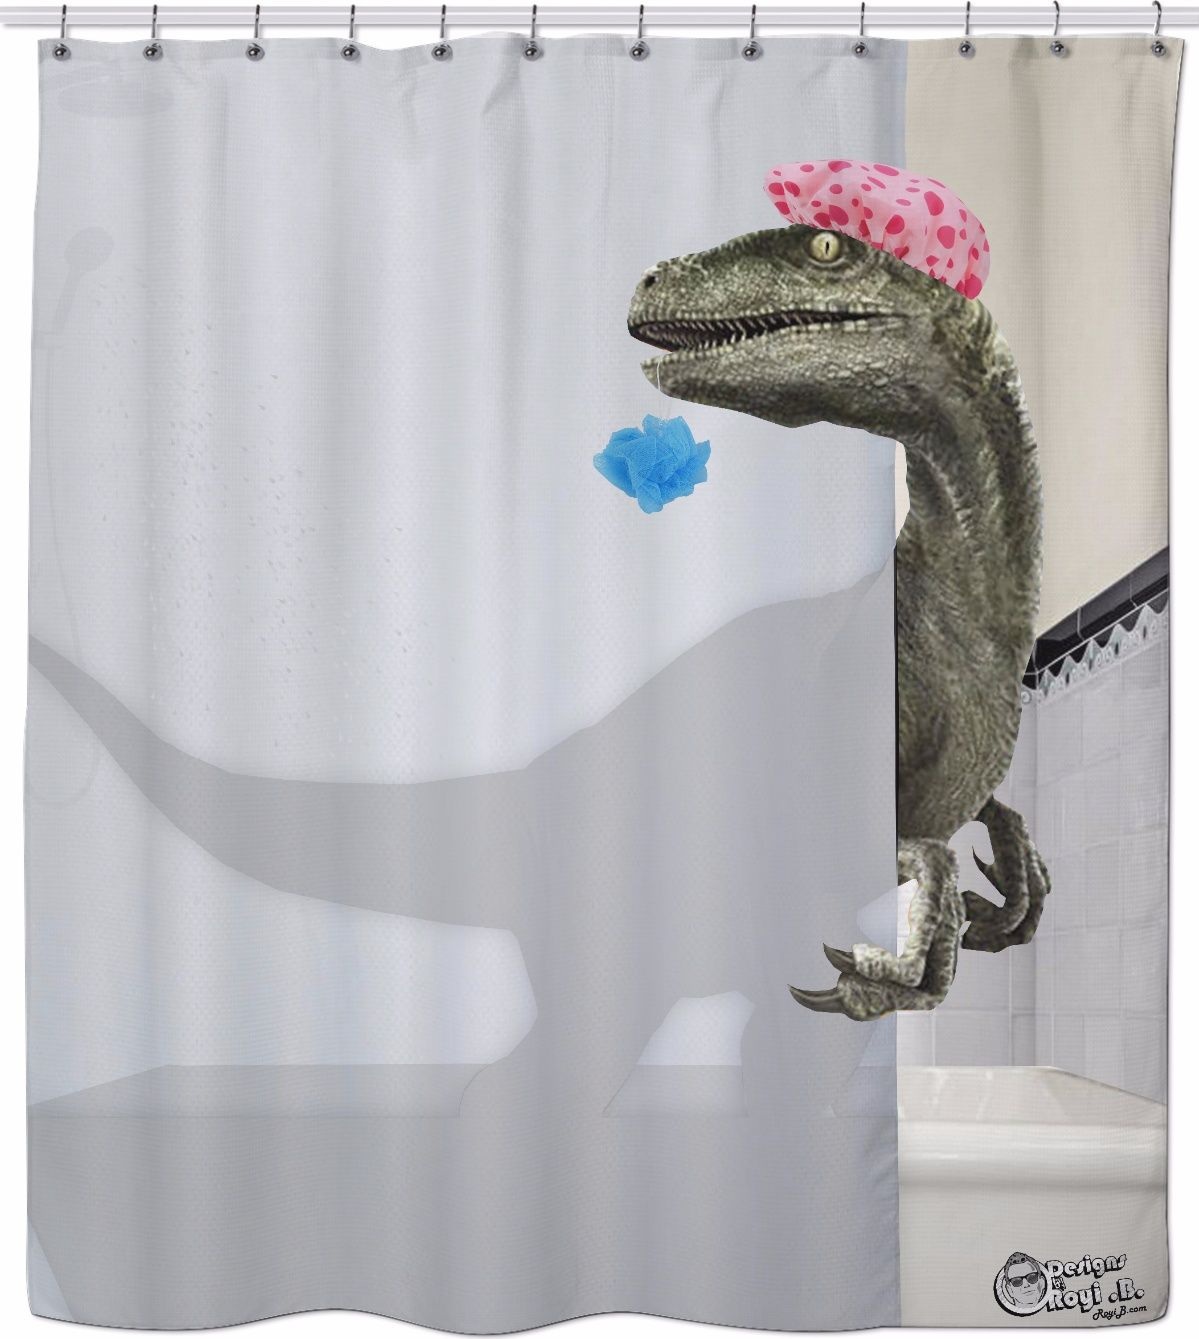 Velociraptor Shower Curtain Cool Shower Curtains Shower Curtain